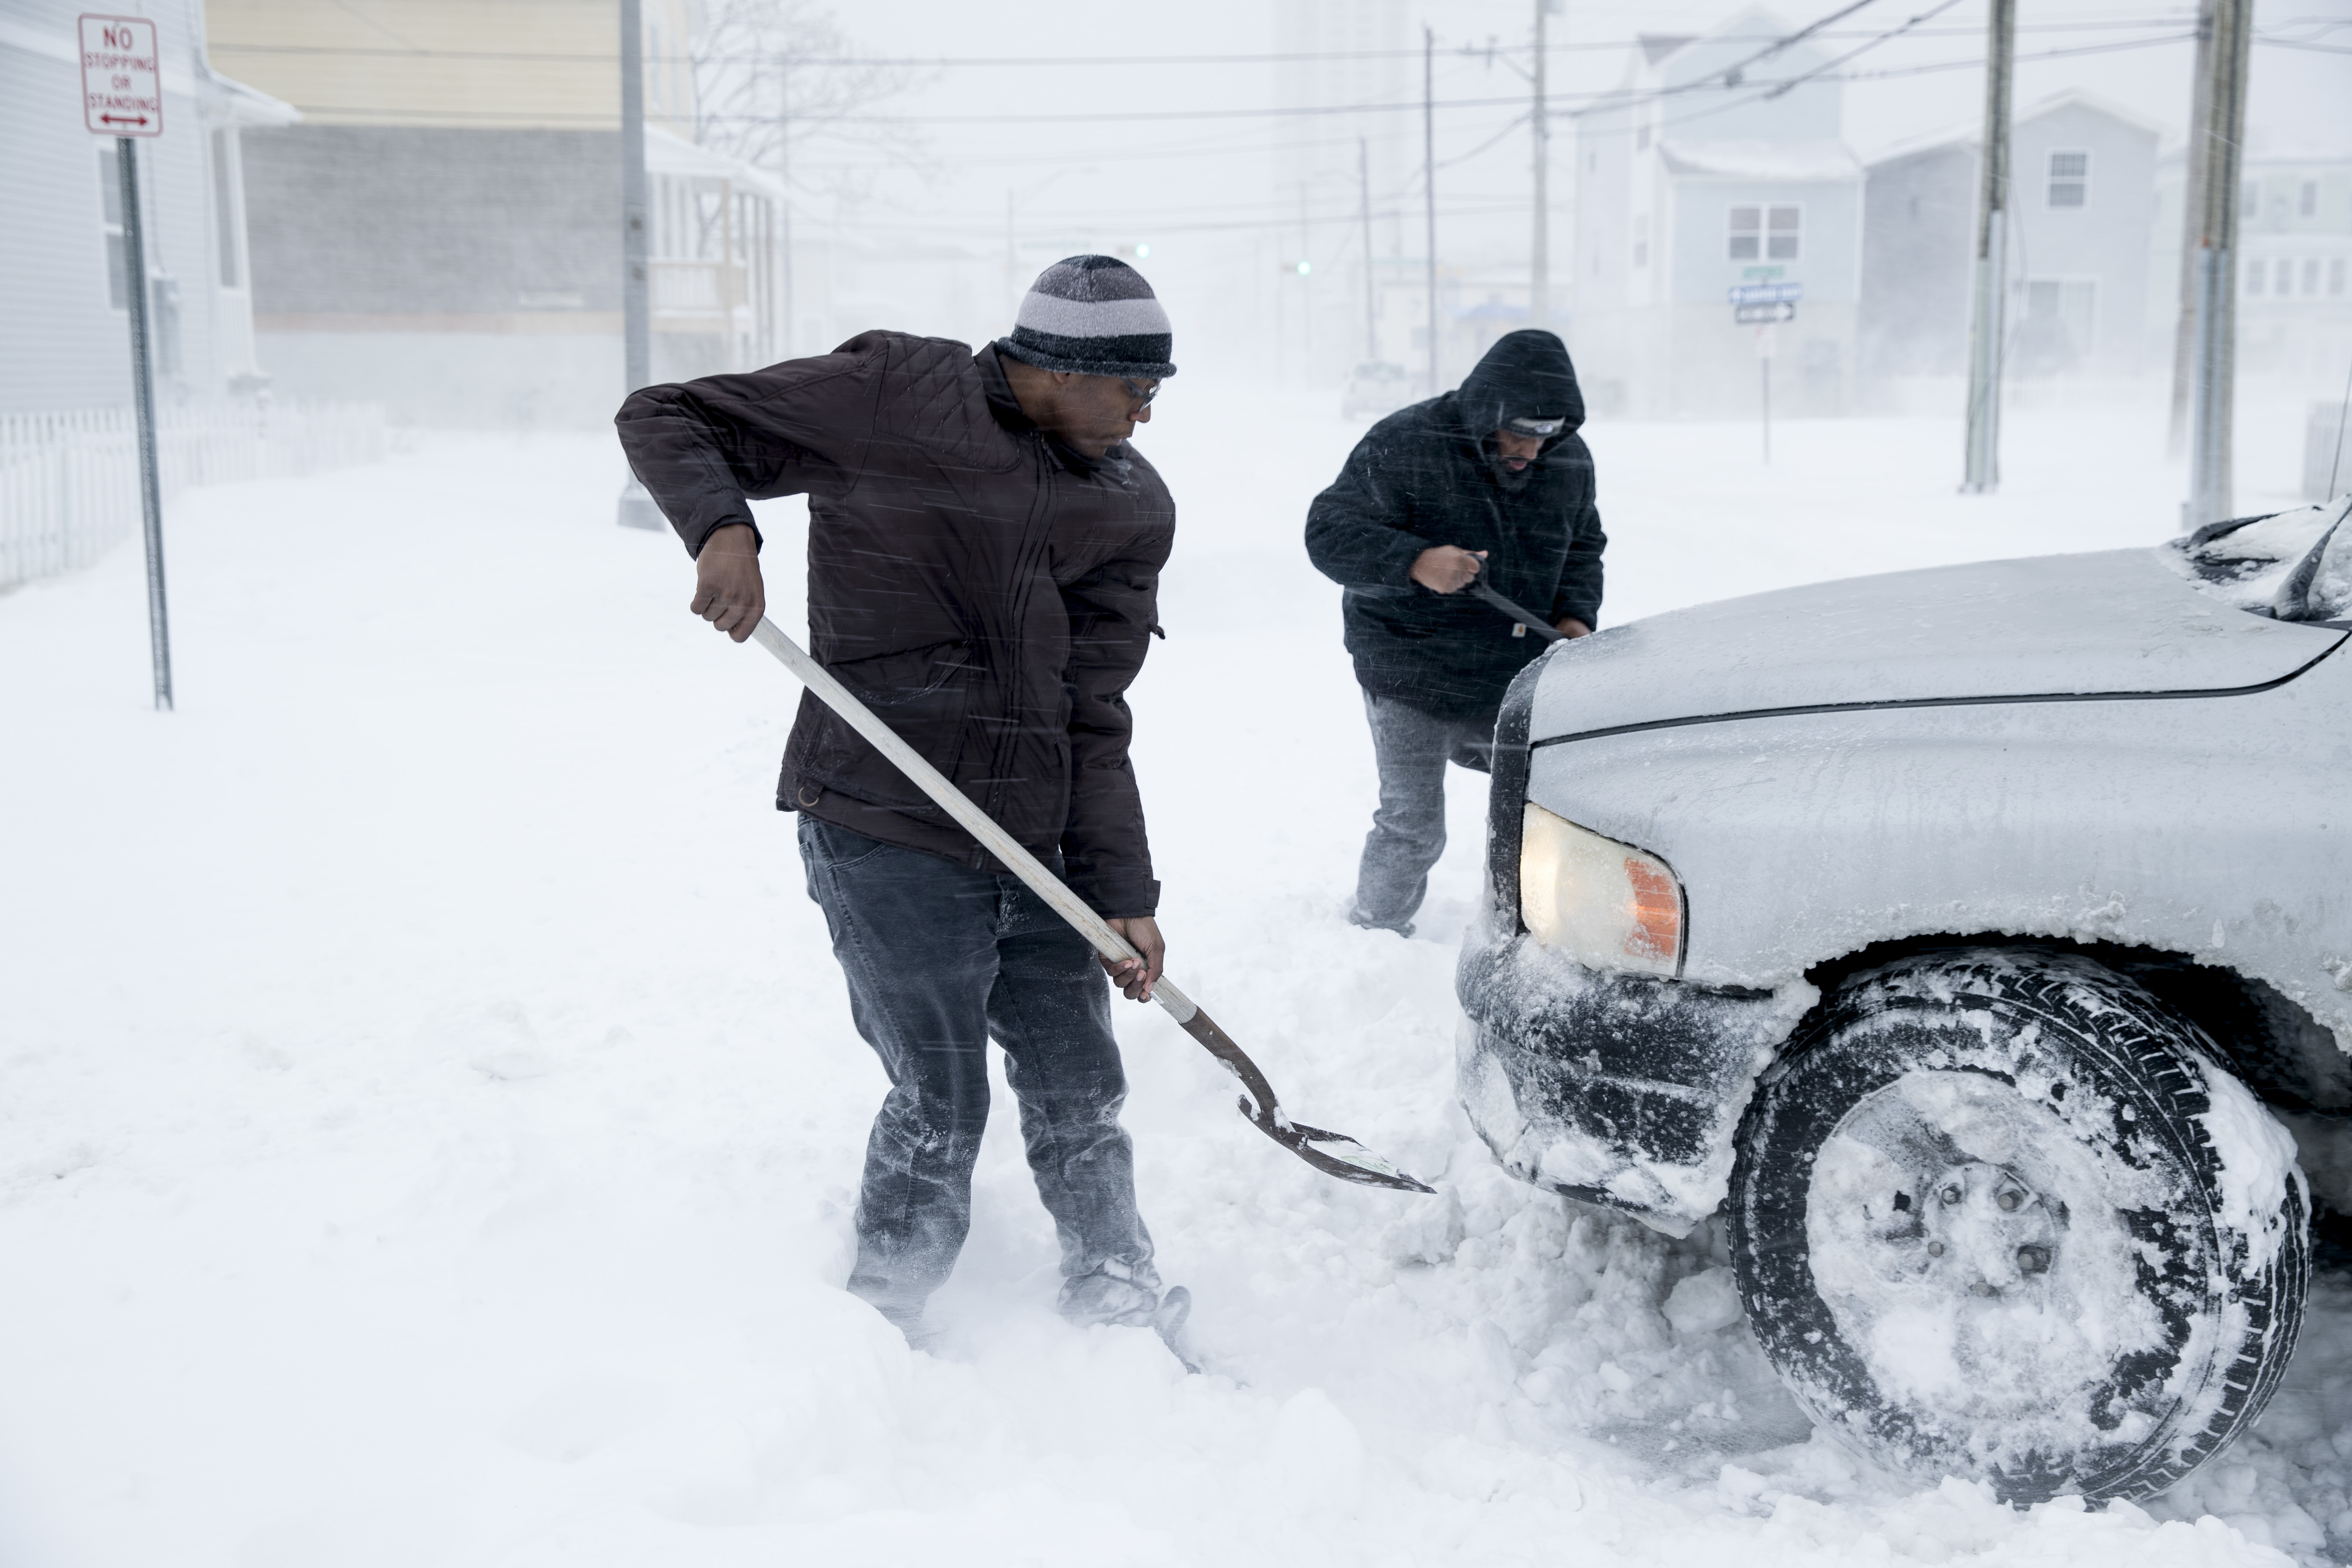 "<div class=""meta image-caption""><div class=""origin-logo origin-image none""><span>none</span></div><span class=""caption-text"">Umoja Blanks, center, and Devin Brown help to dig out a stranger's stranded truck during a winter snowstorm in Atlantic City, N.J., Thursday, Jan. 4, 2018. (AP Photo/Matt Rourke) (AP)</span></div>"